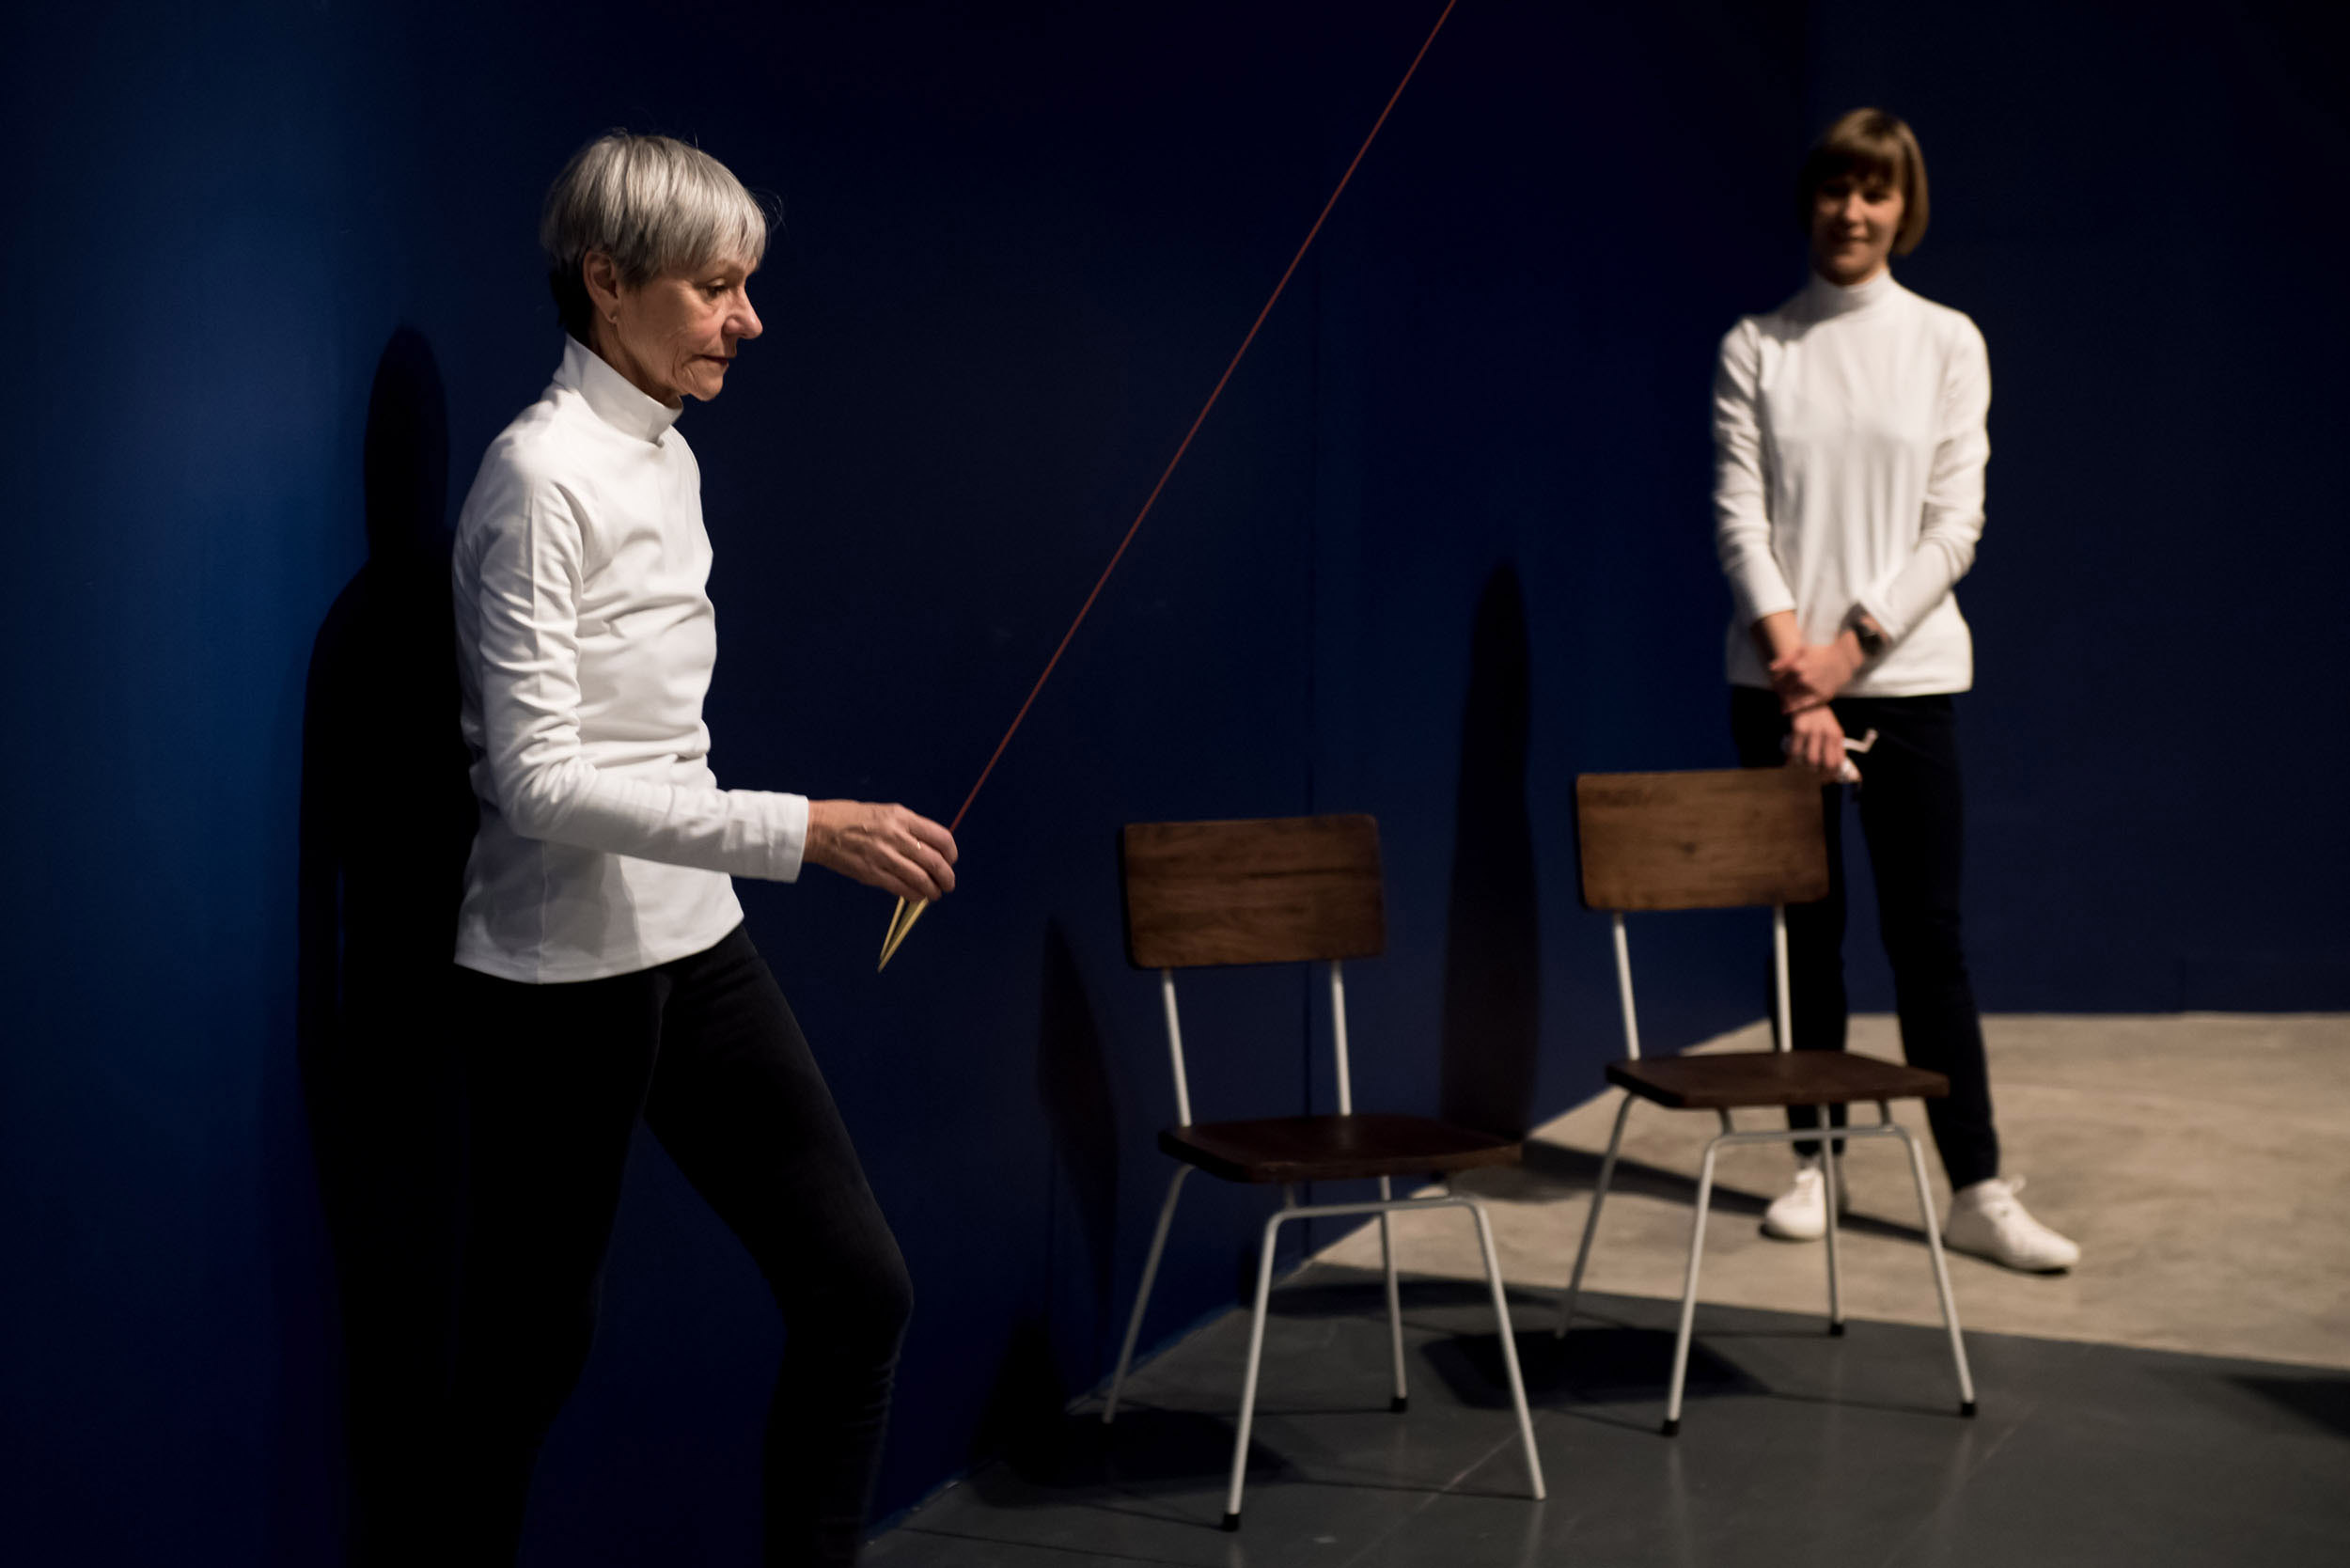 Siobhan Davis and Helka Kaski performing Datum at the Barbican Curve Gallery